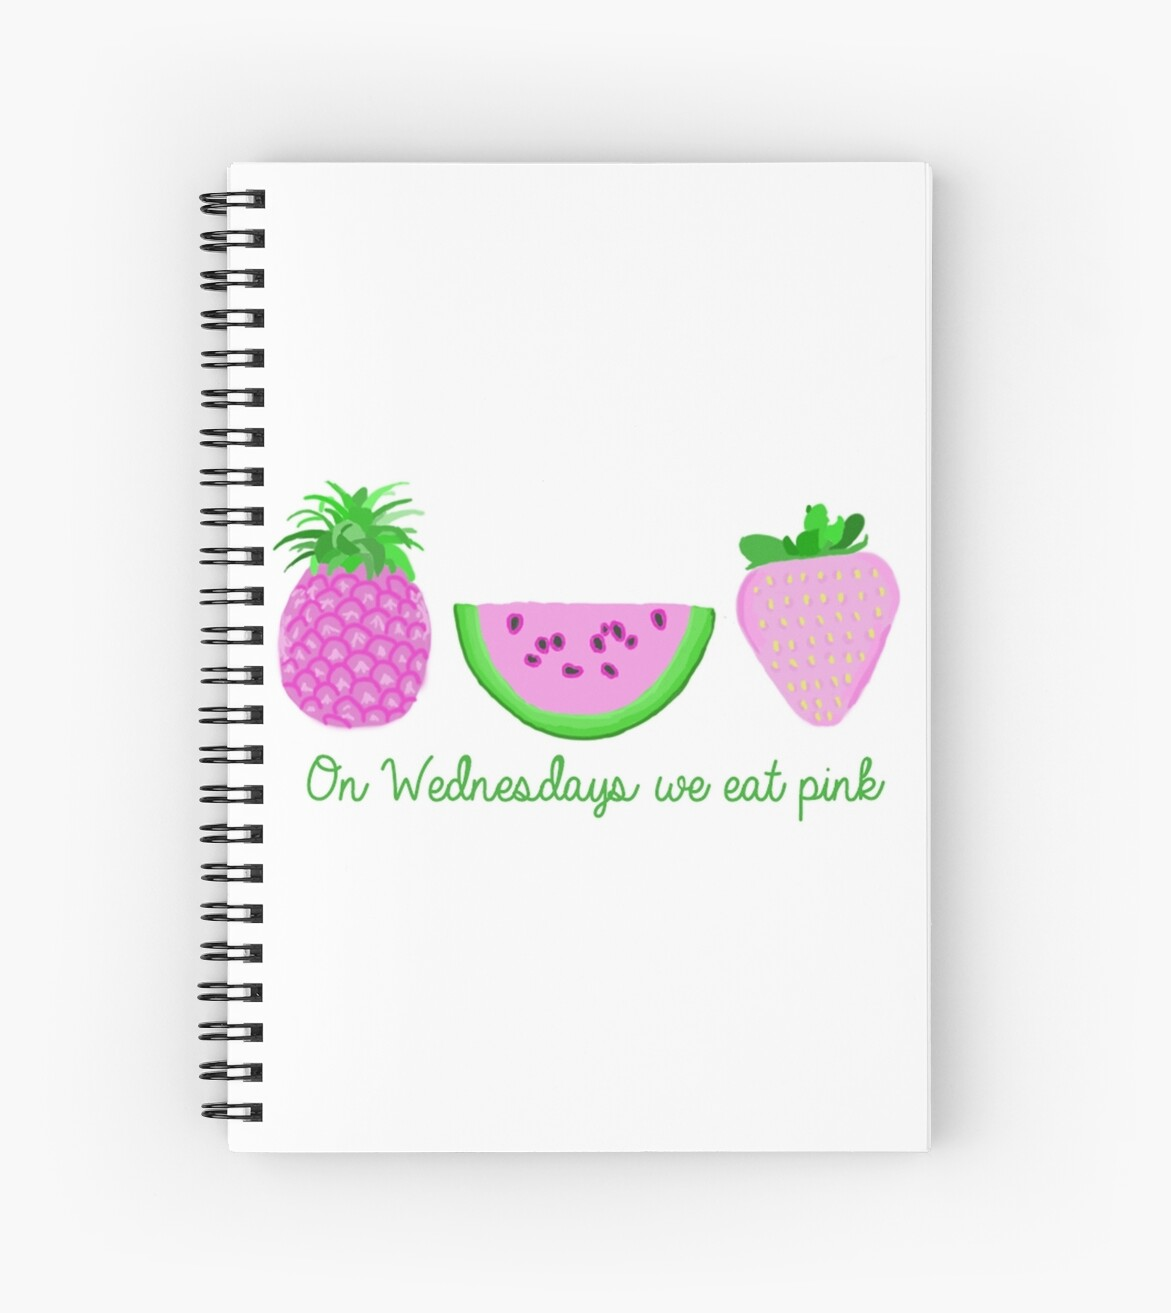 On Wednesdays we eat pink by Stacey Foster